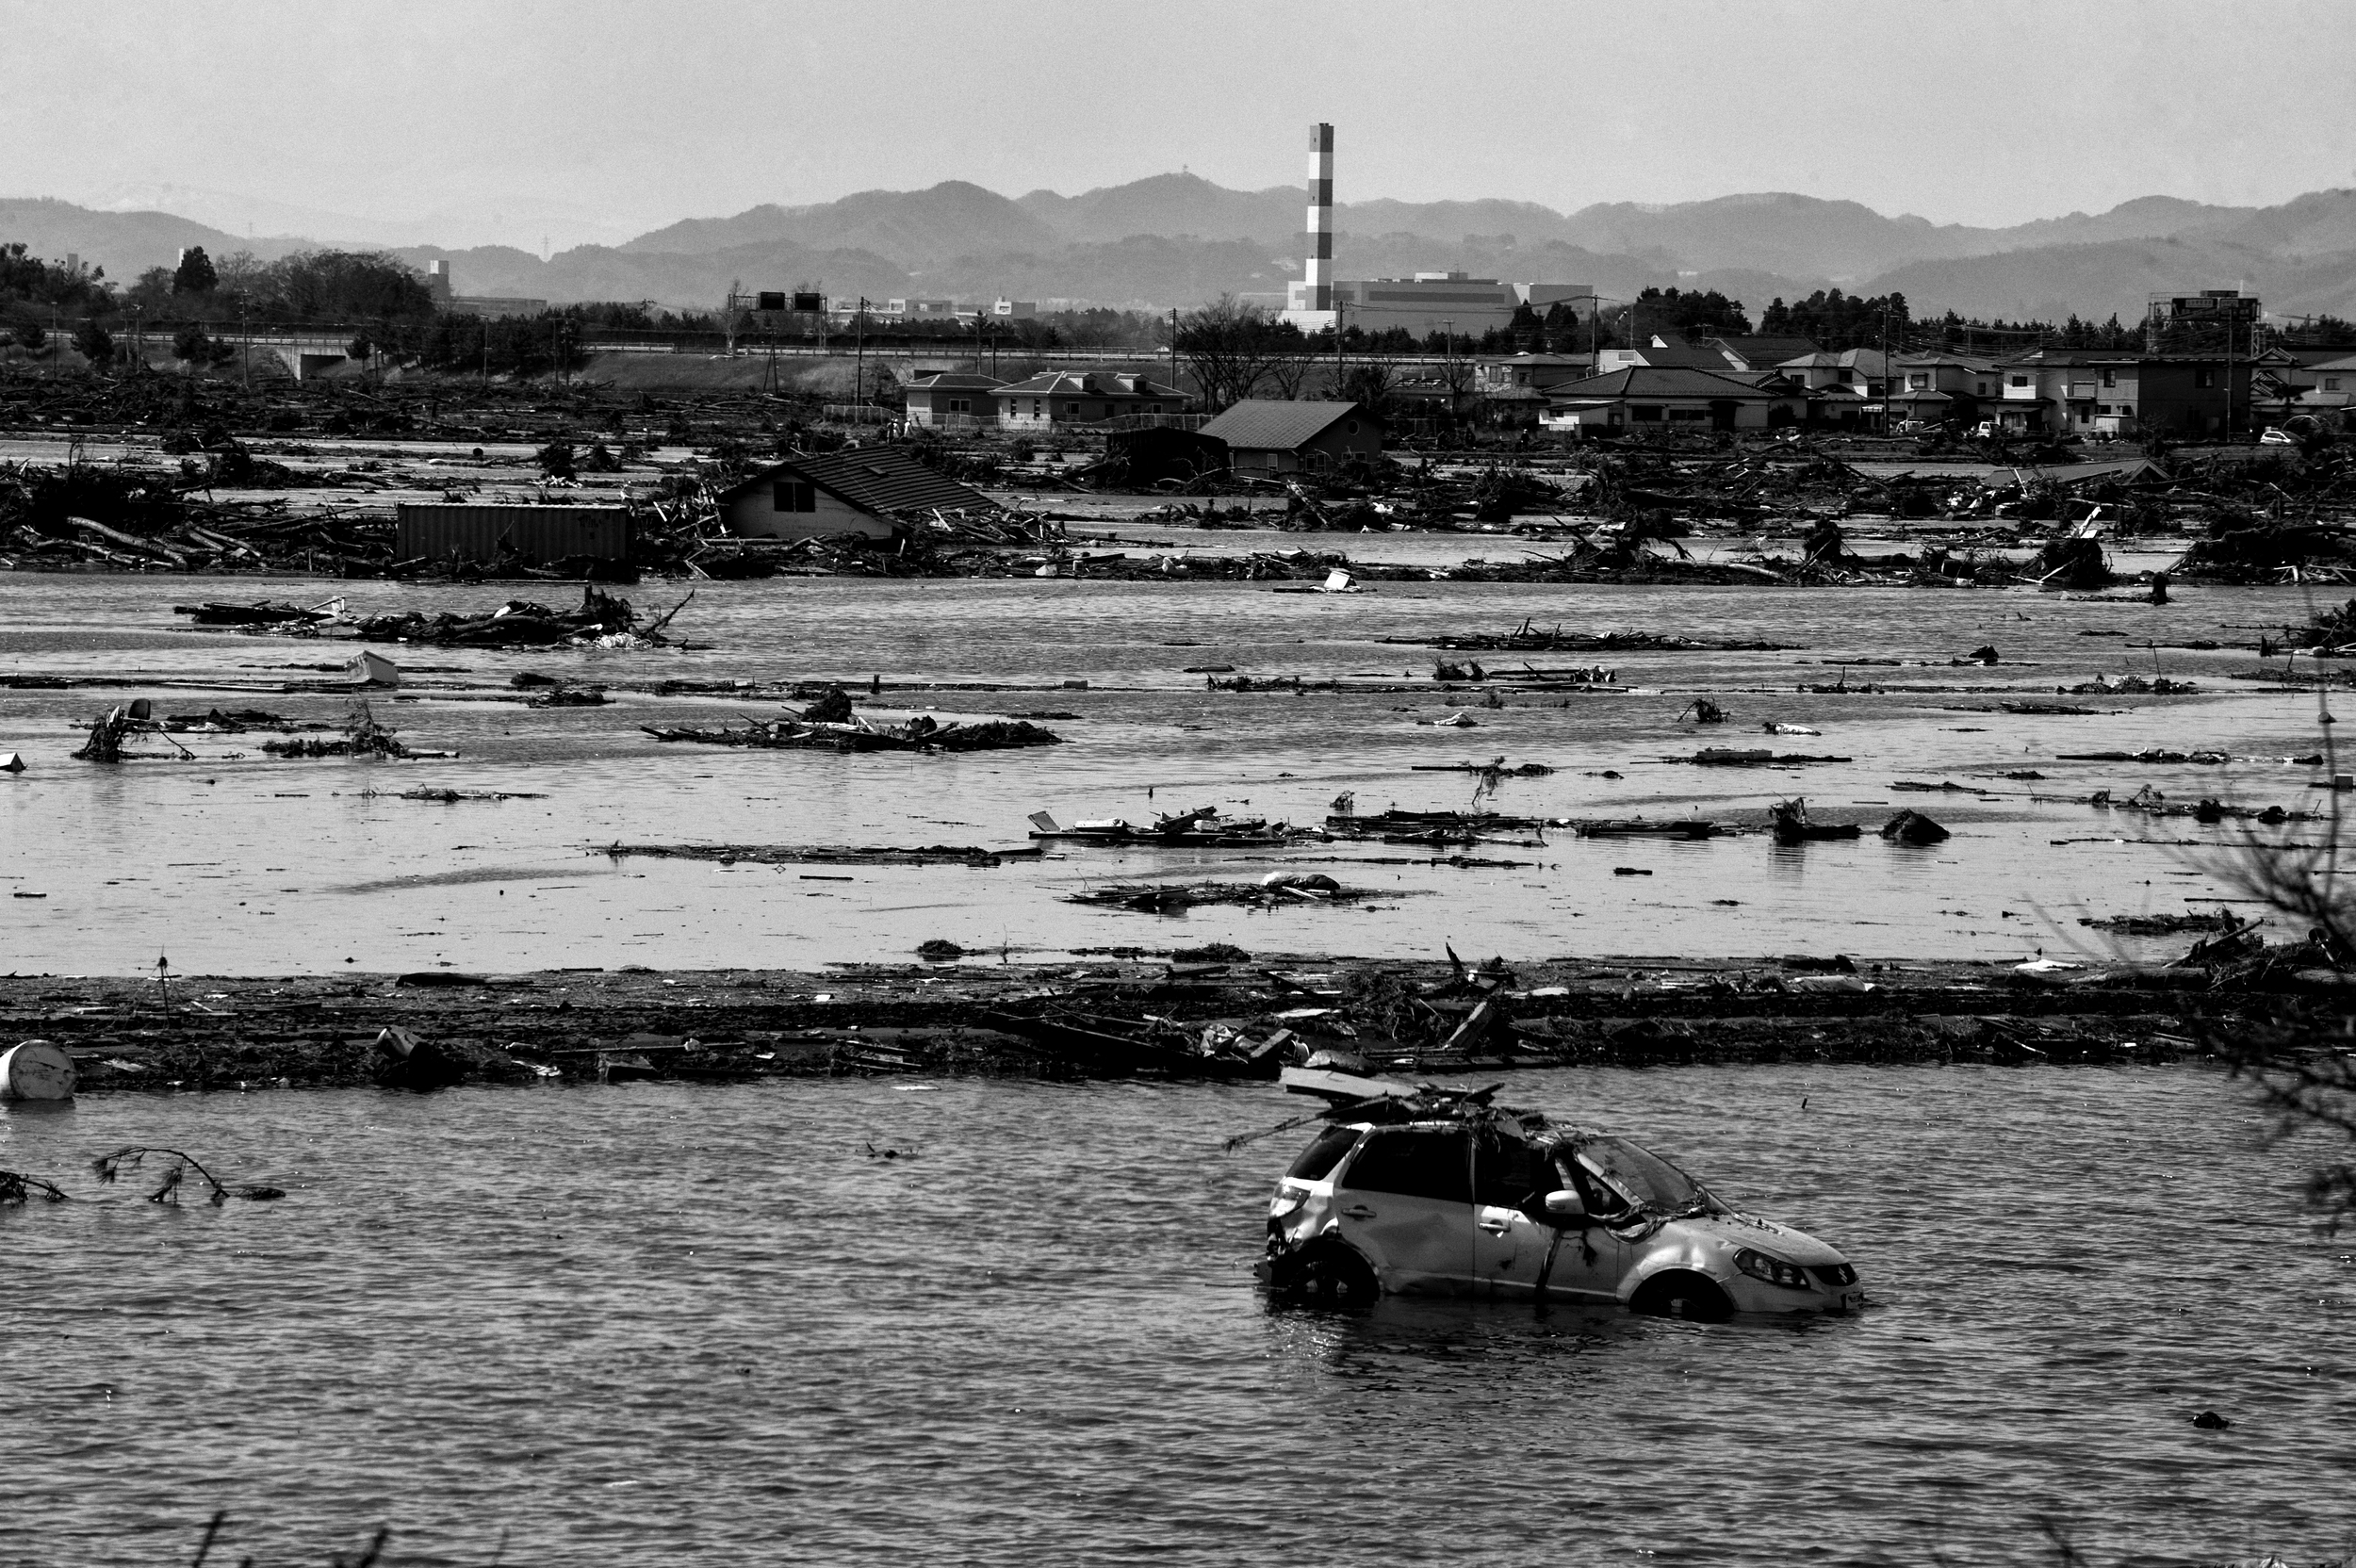 Japanese police search for survivors after the 2011 Tōhoku earthquake and tsunami in Sendai, Miyagi, Japan, March 13, 2011. (Photo / Mark Pearson) Japanese National Police Agency confirmed 15,884 deaths,     6,147 injured,     and 2,636 people missing  .